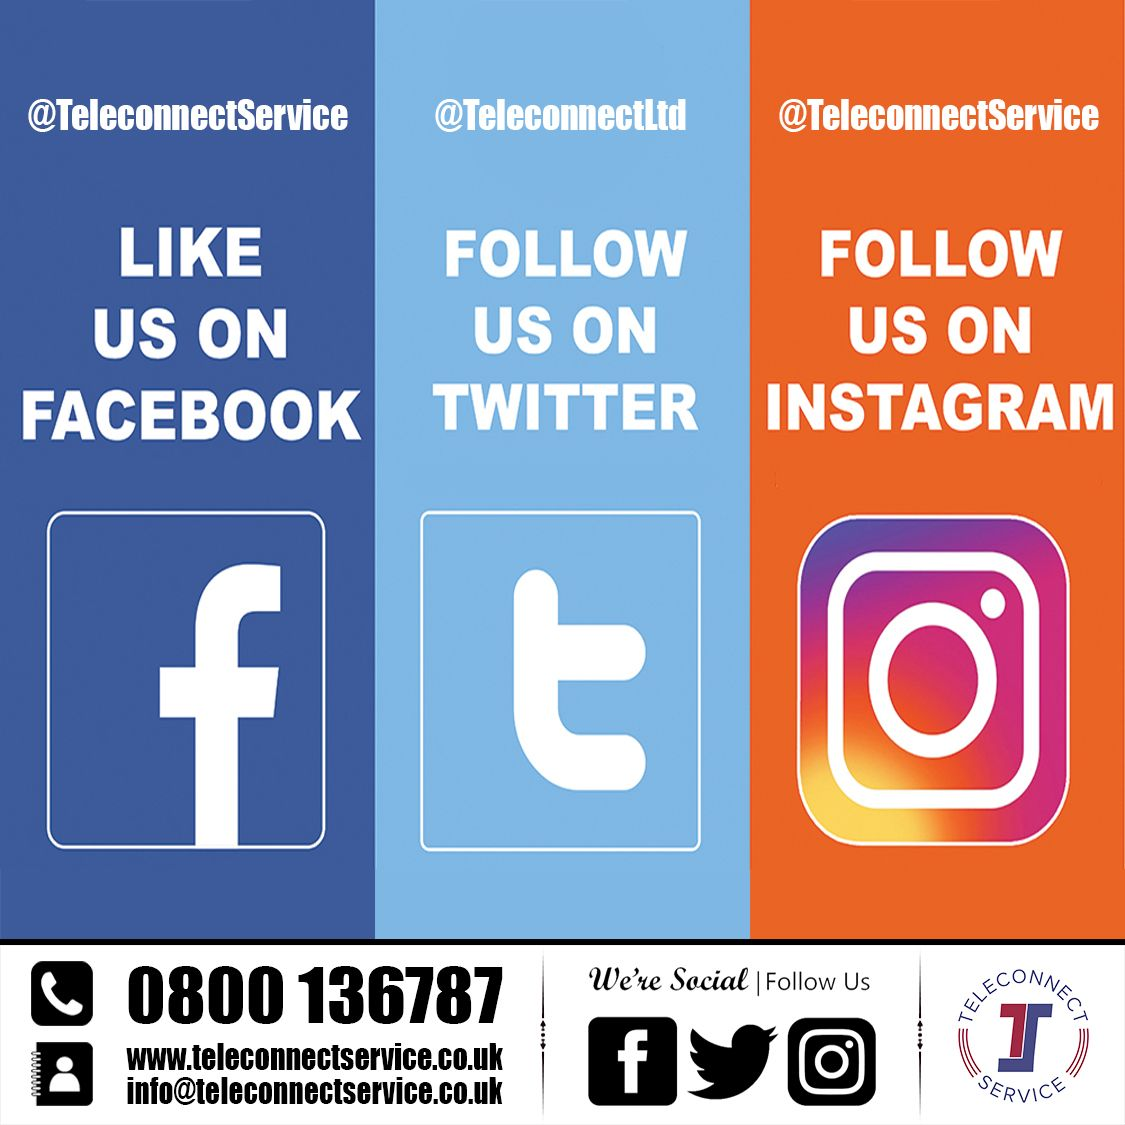 Connected With Teleconnect Social Media Signs Social Media Facebook Instagram Sign